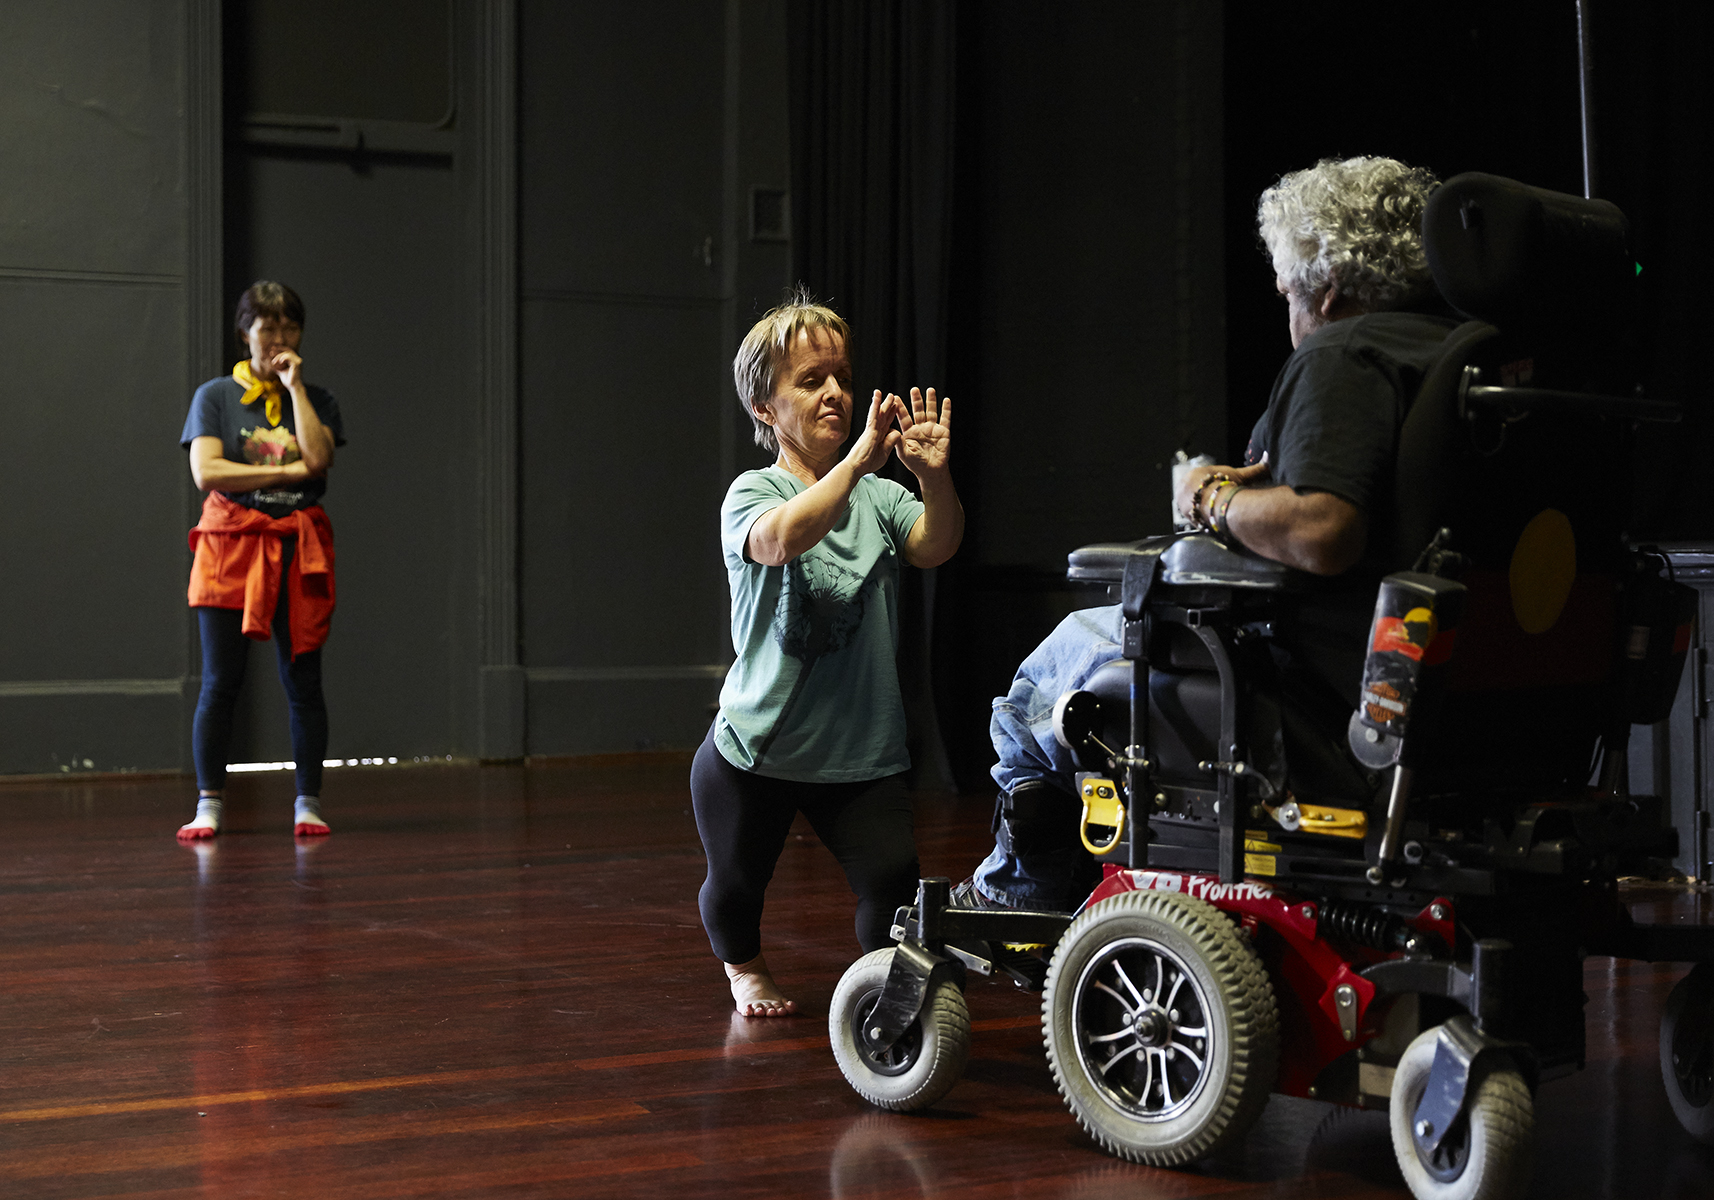 One woman holds out hands with palms flat to person sitting in wheelchair whilst one woman stands watching.